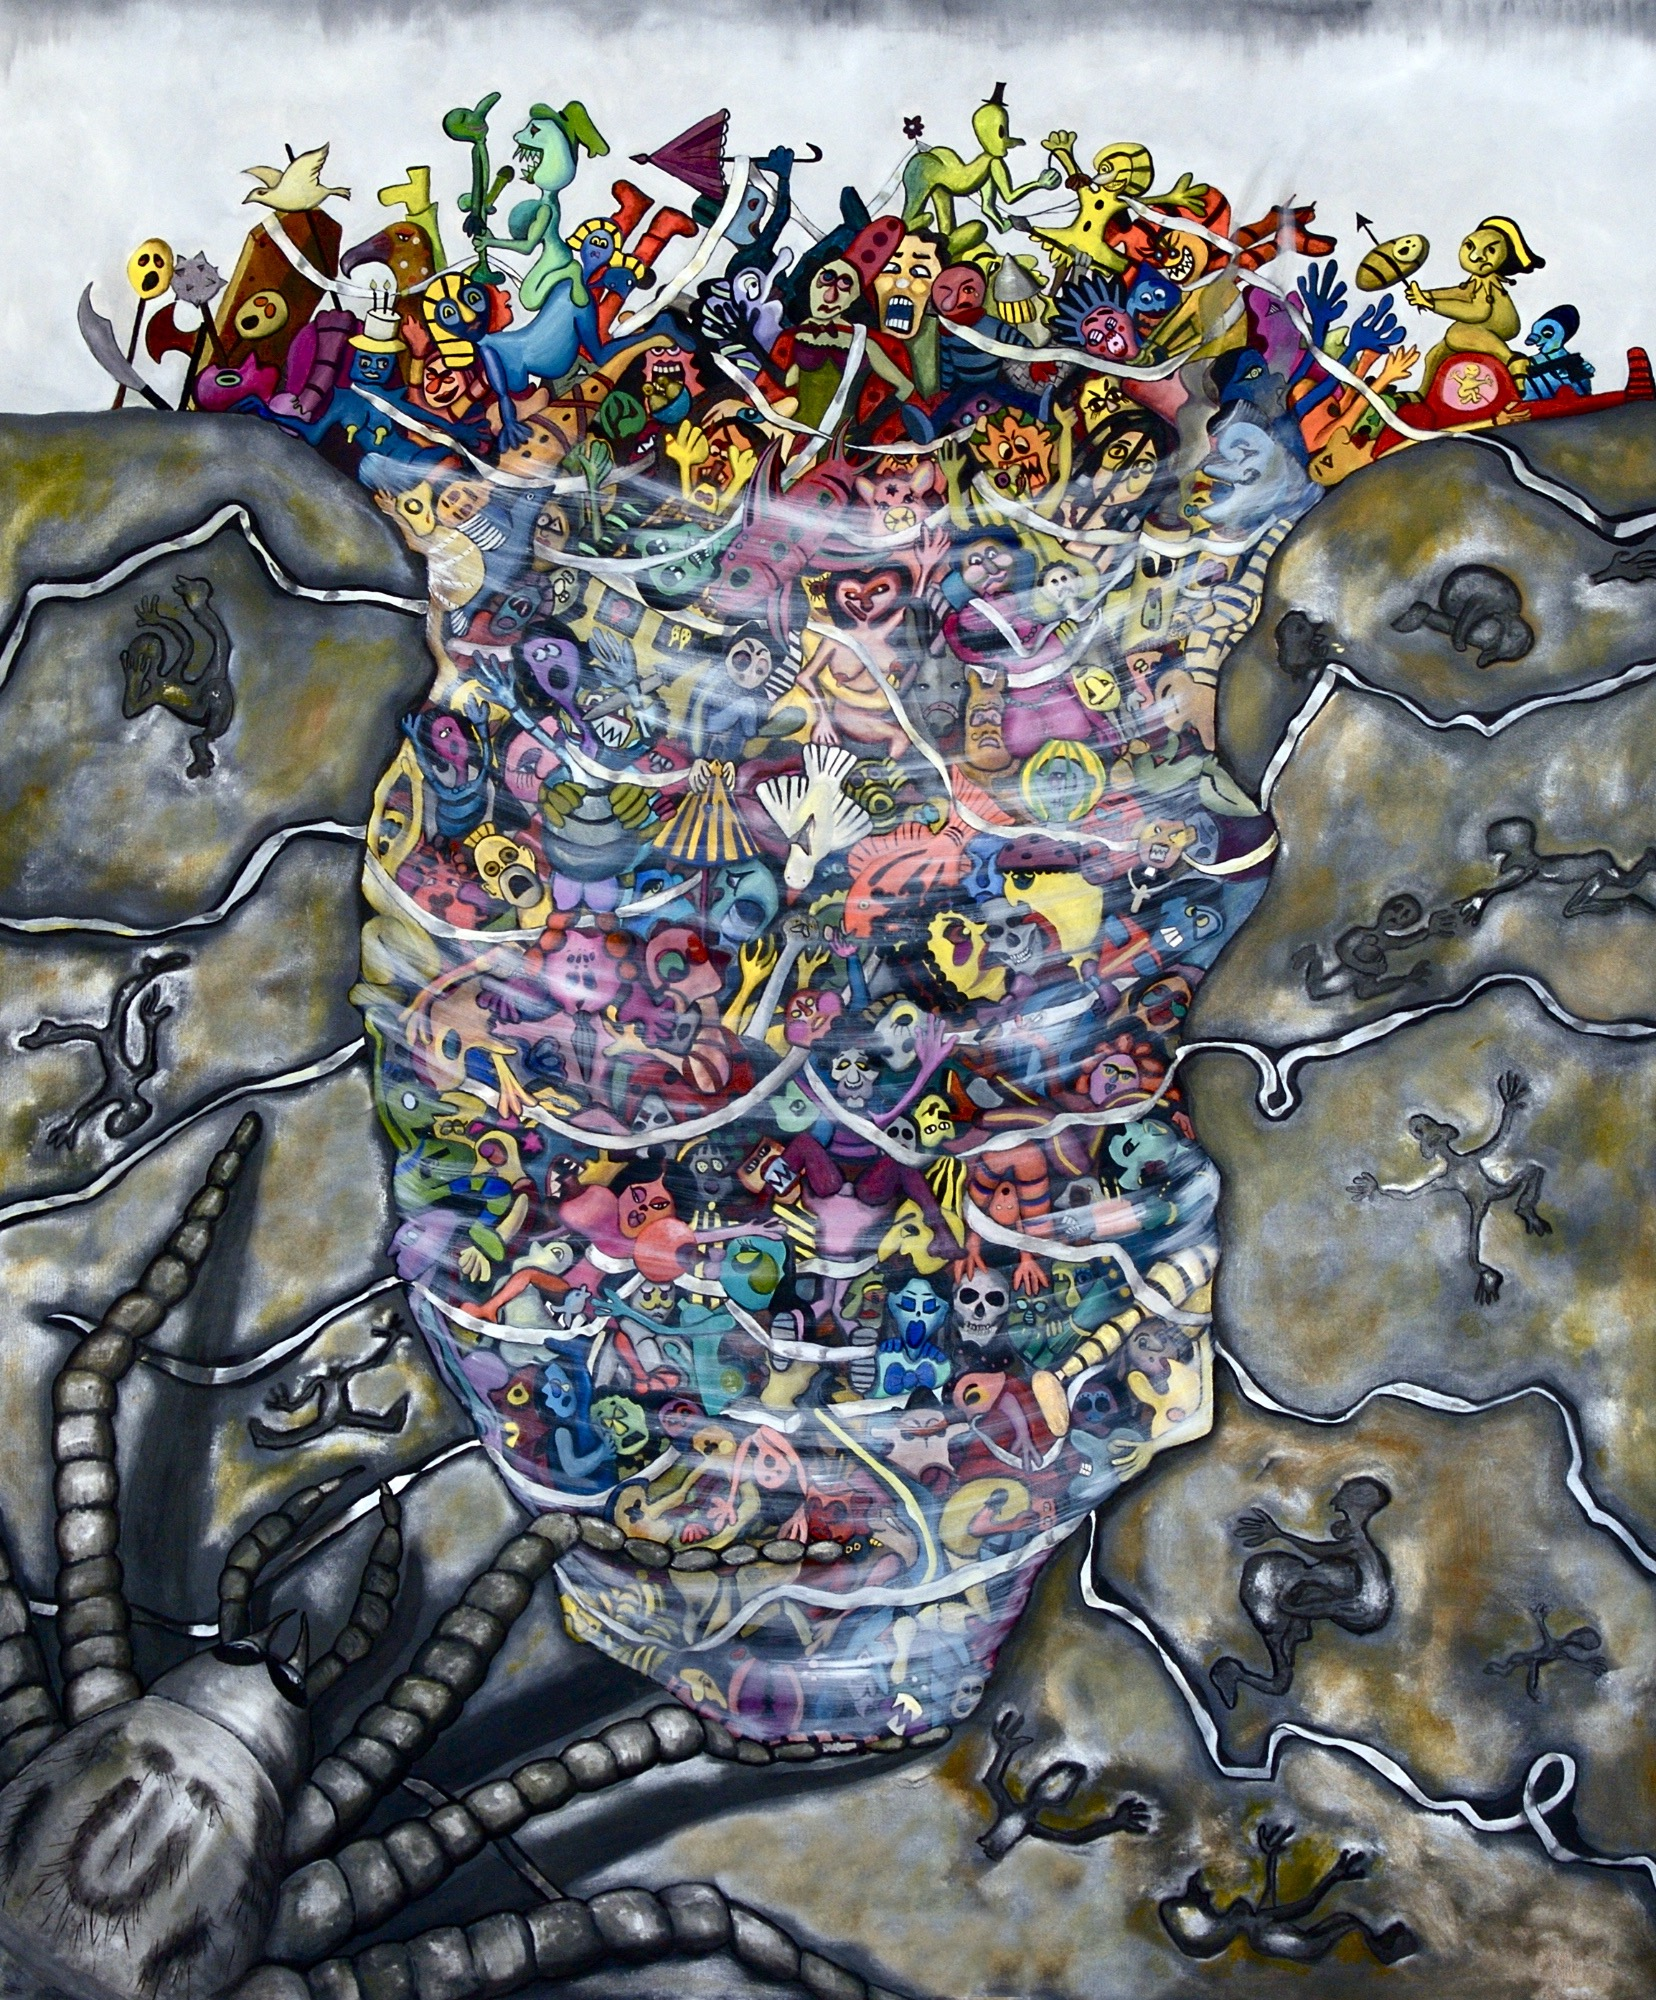 DER UNTERGANG (TRIPTCYH) THE SPIDER - 155CM X 122CM - OIL ON CANVAS - 2008